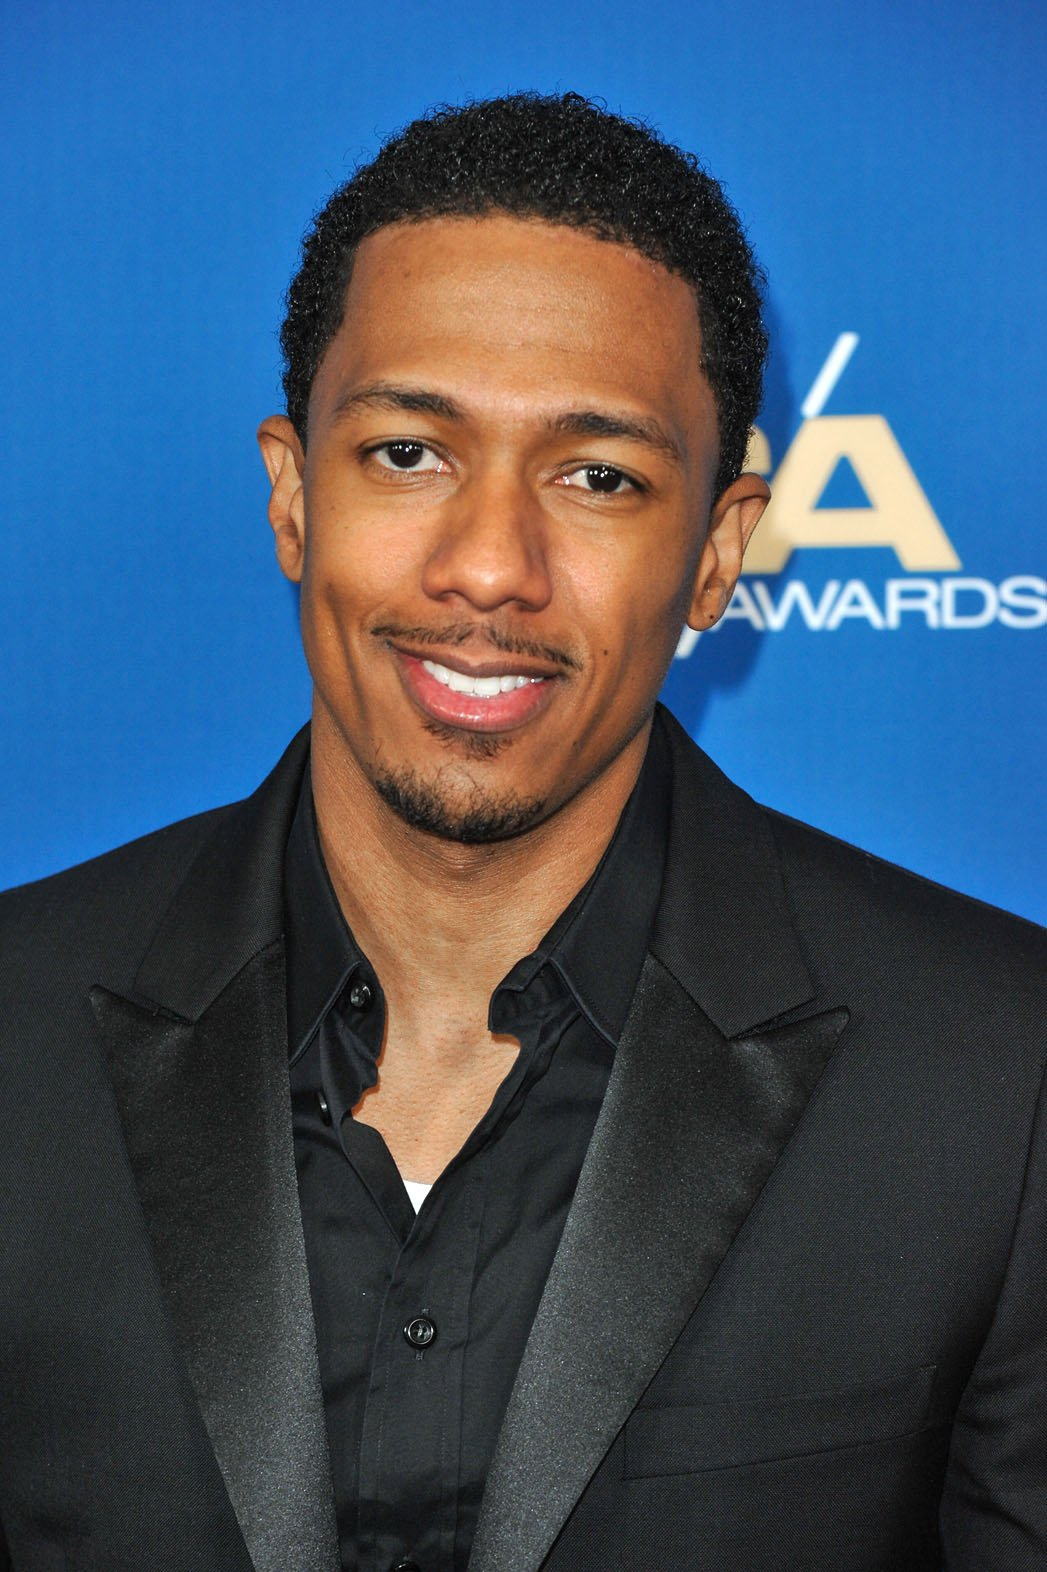 'Brooklyn Nine-Nine' Books Nick Cannon - nick_cannon_headshot_a_p